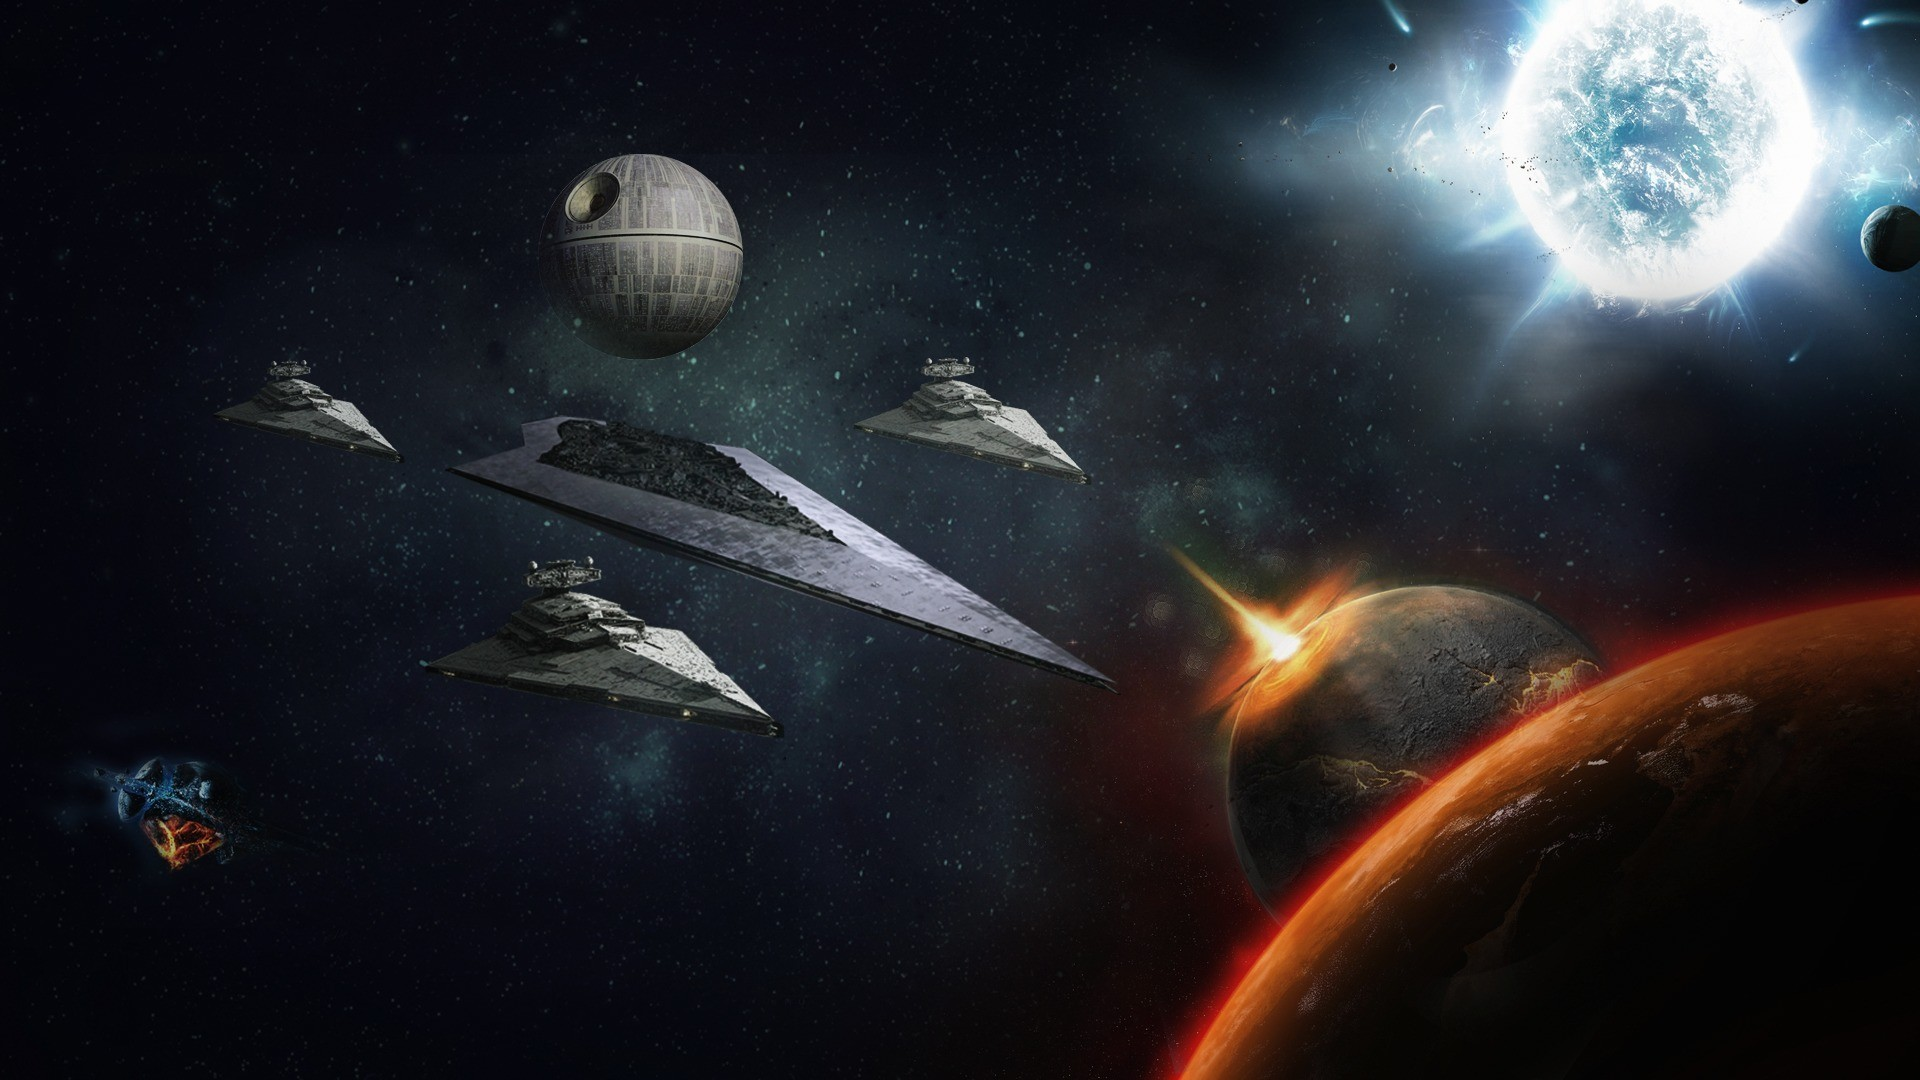 Star Wars Space Wallpaper 70 images 1920x1080